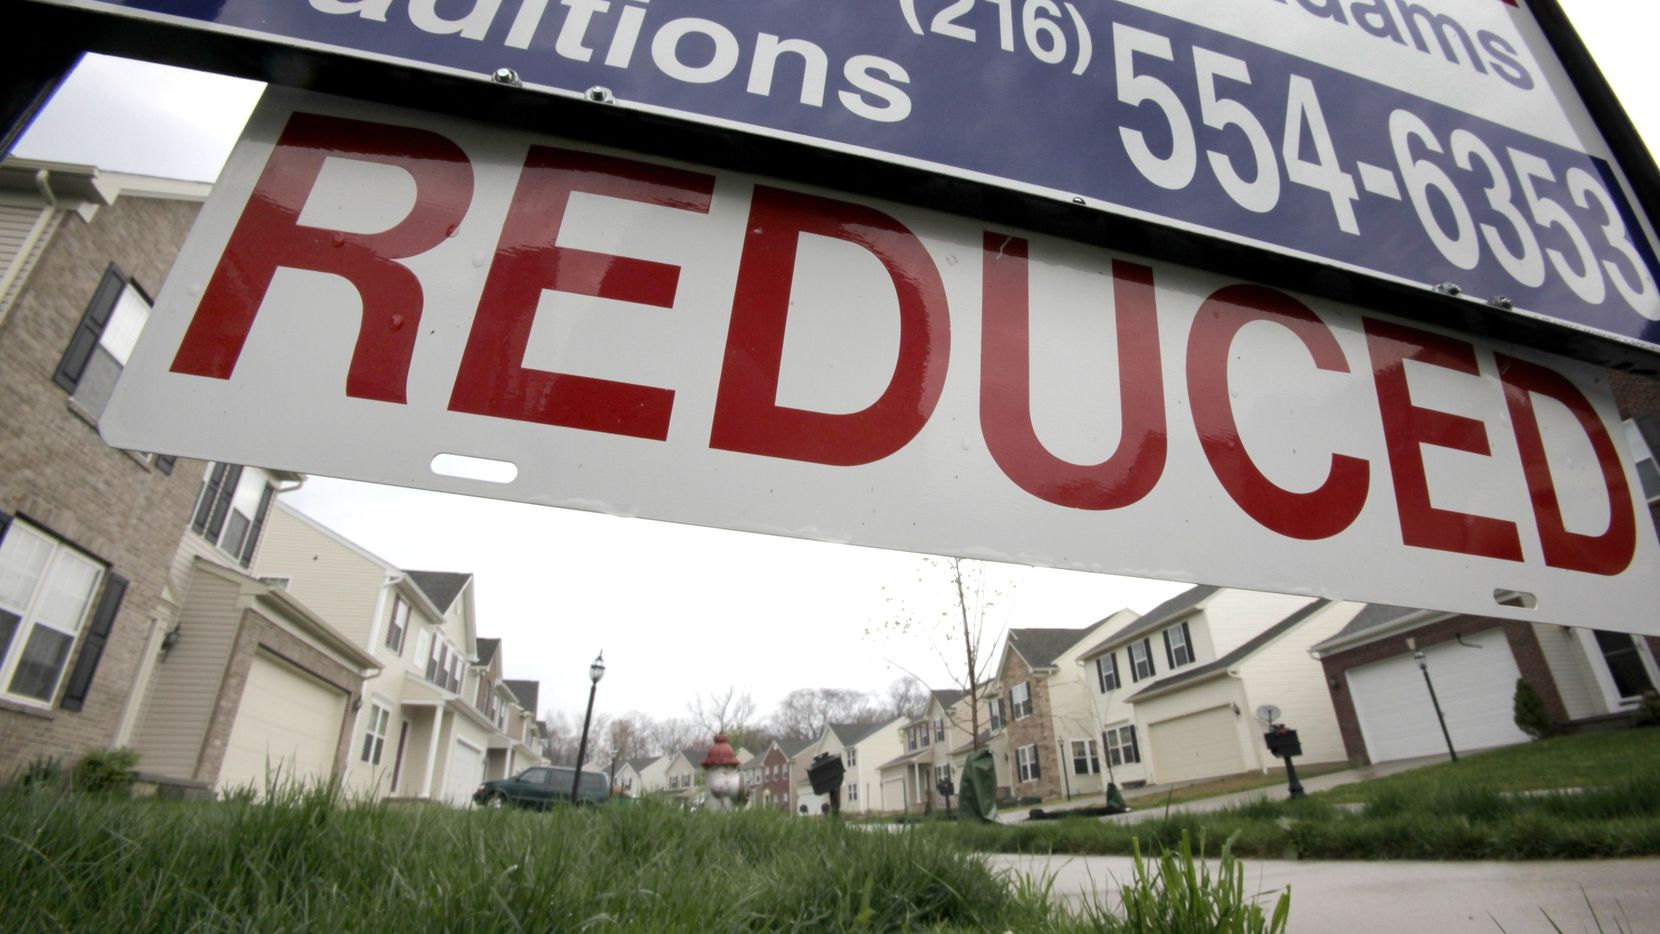 Nationwide the number of homes that have seen price cuts is at the highest point in four years, according to Trulia.